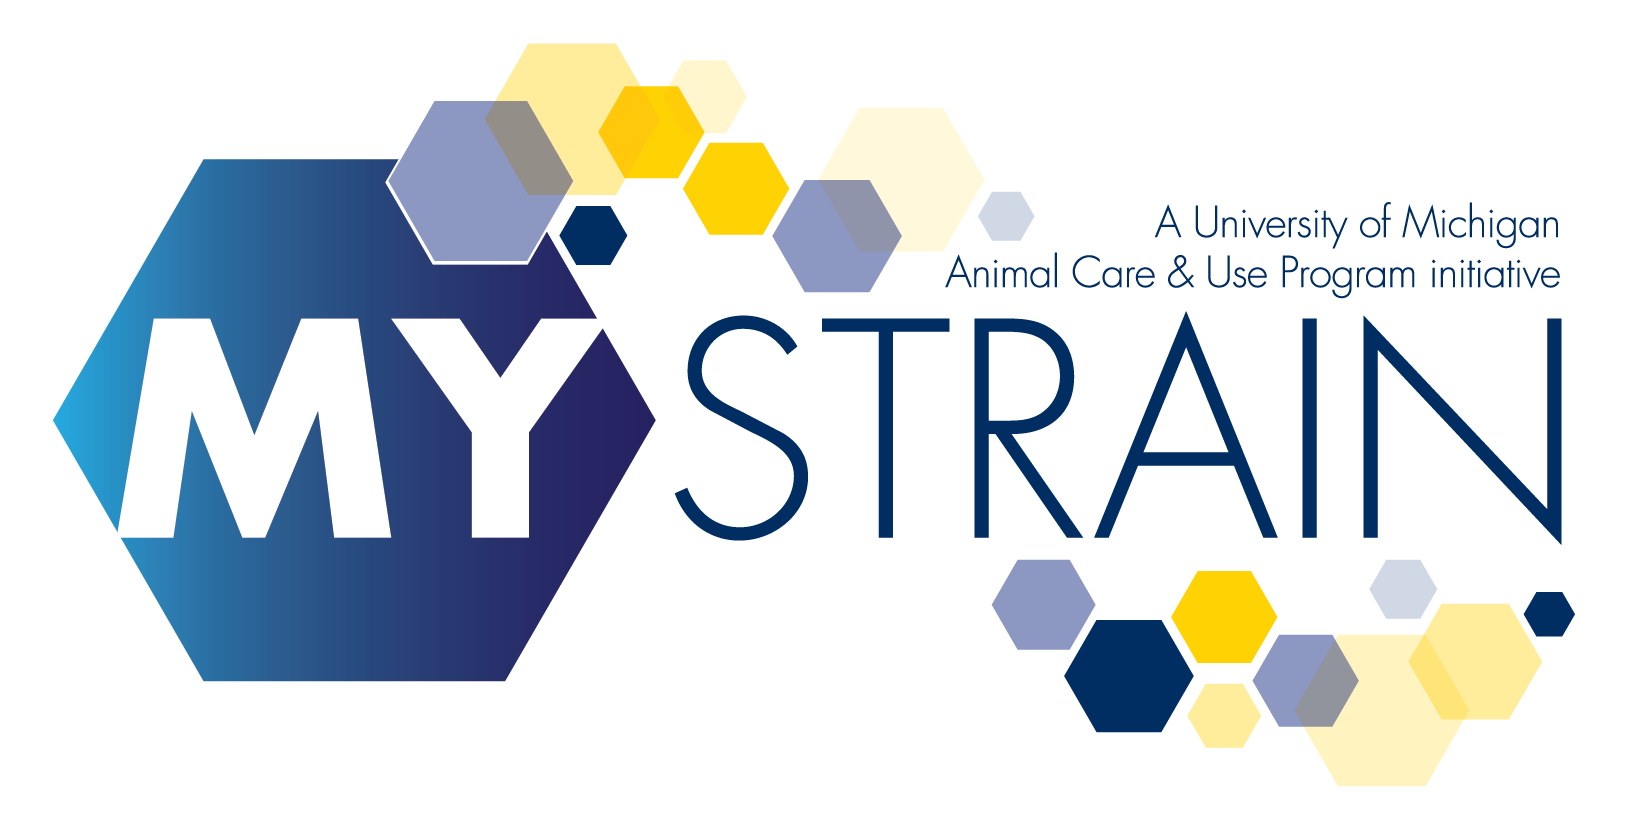 Animal Care & Use Program My Strain Initiative logo